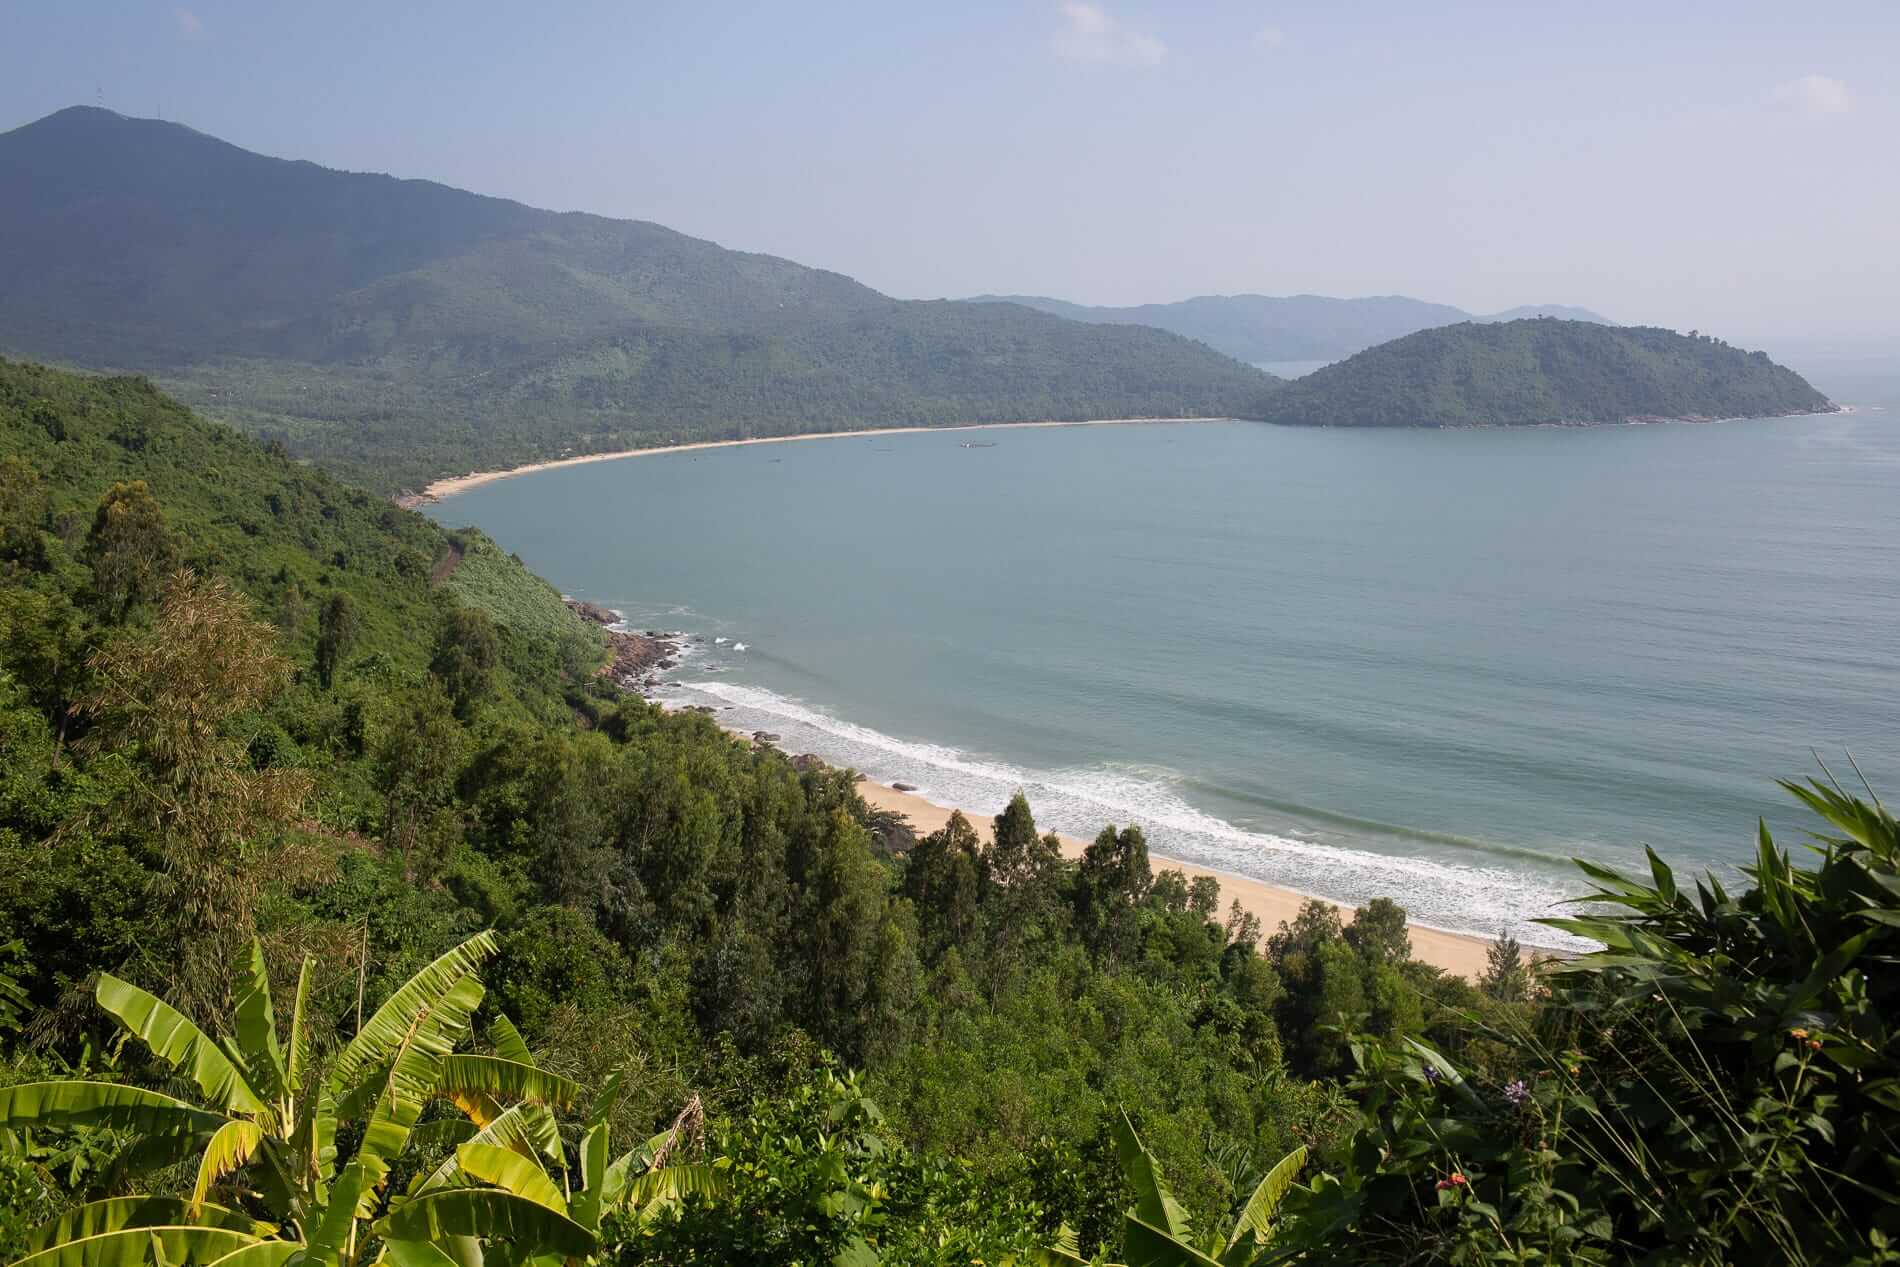 secluded beaches in Da Nang along the Hai Van Pass